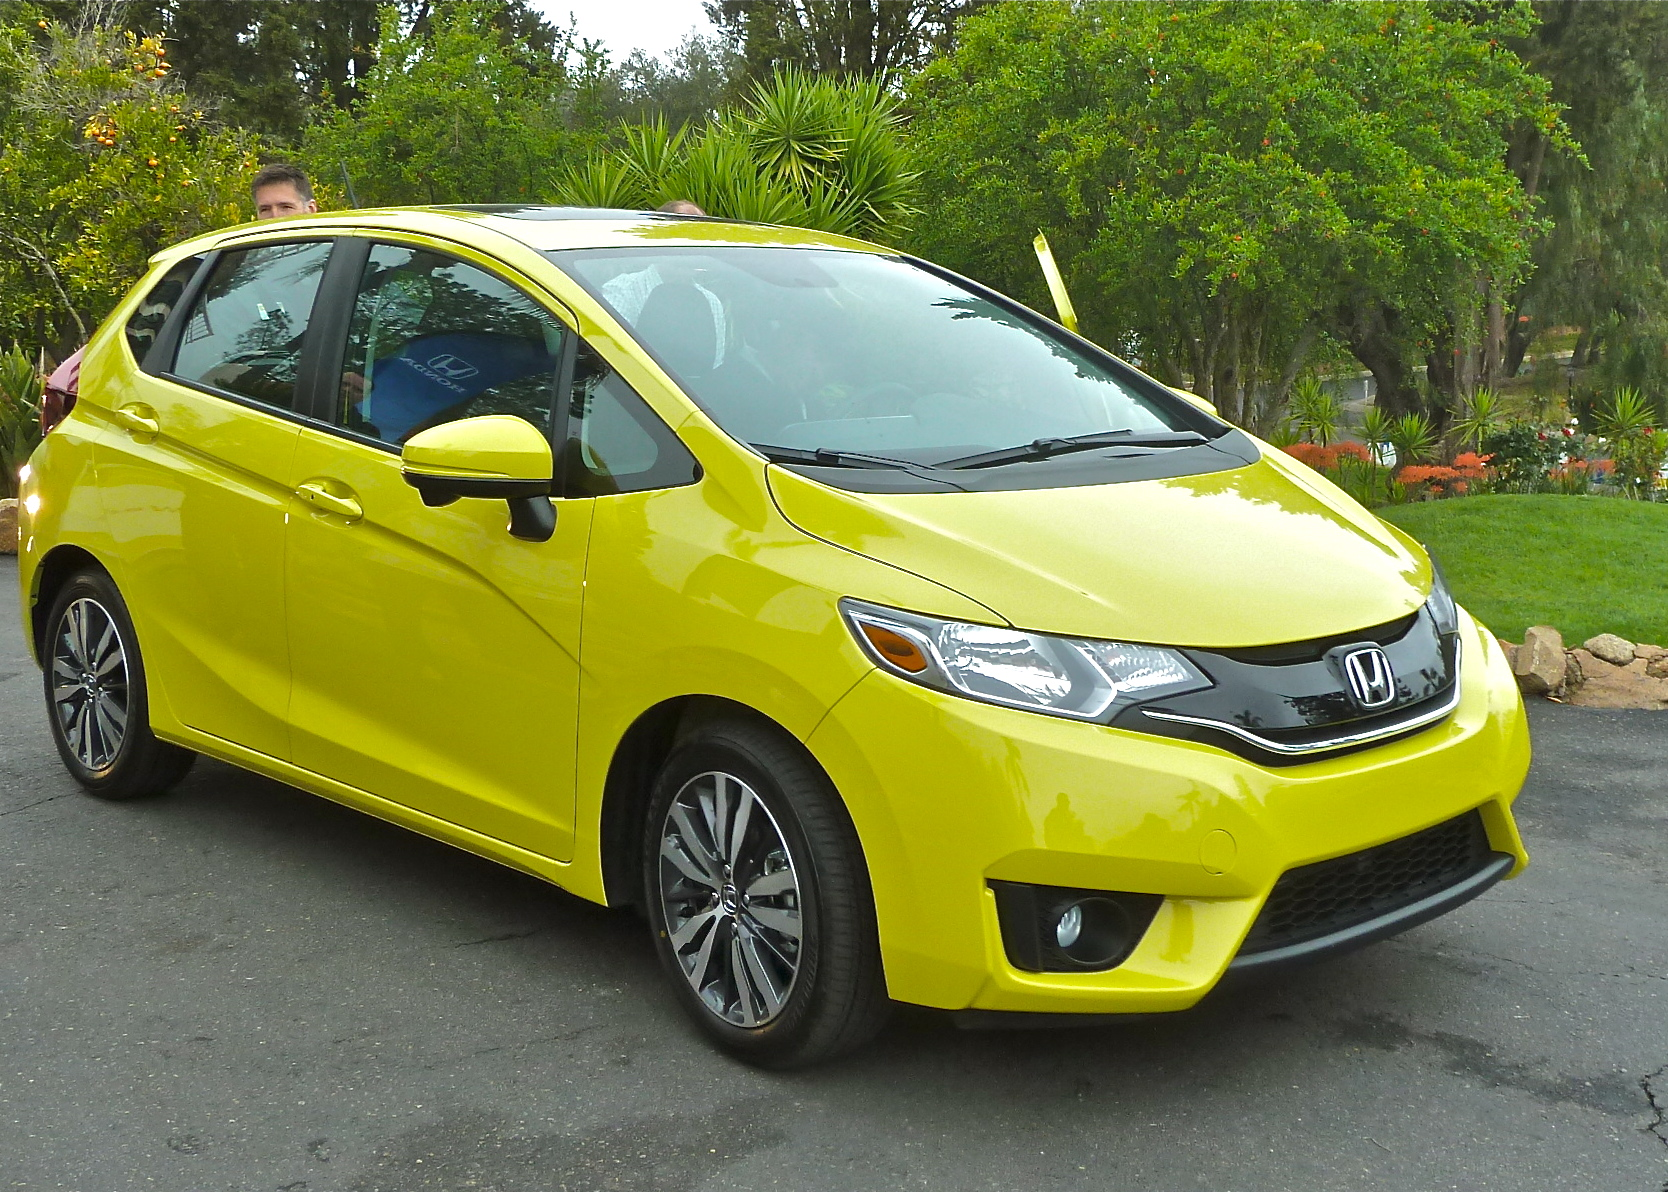 For 2015, Honda redesigned the subcompact Fit from top to bottom.